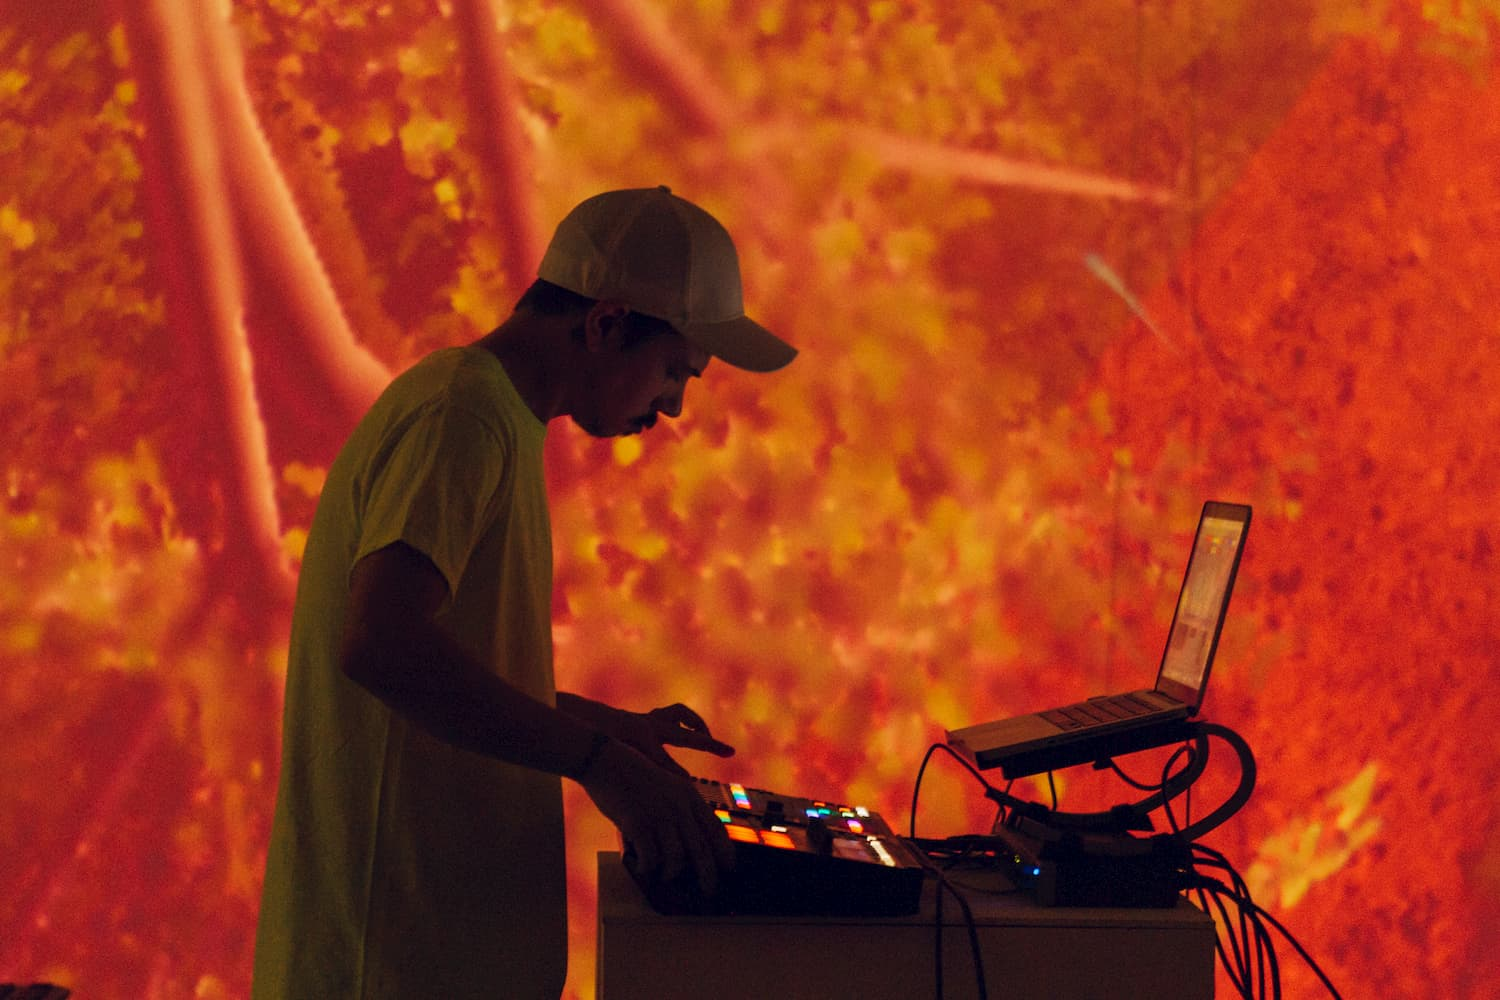 Person mixing audio in front of red hue projection visual.